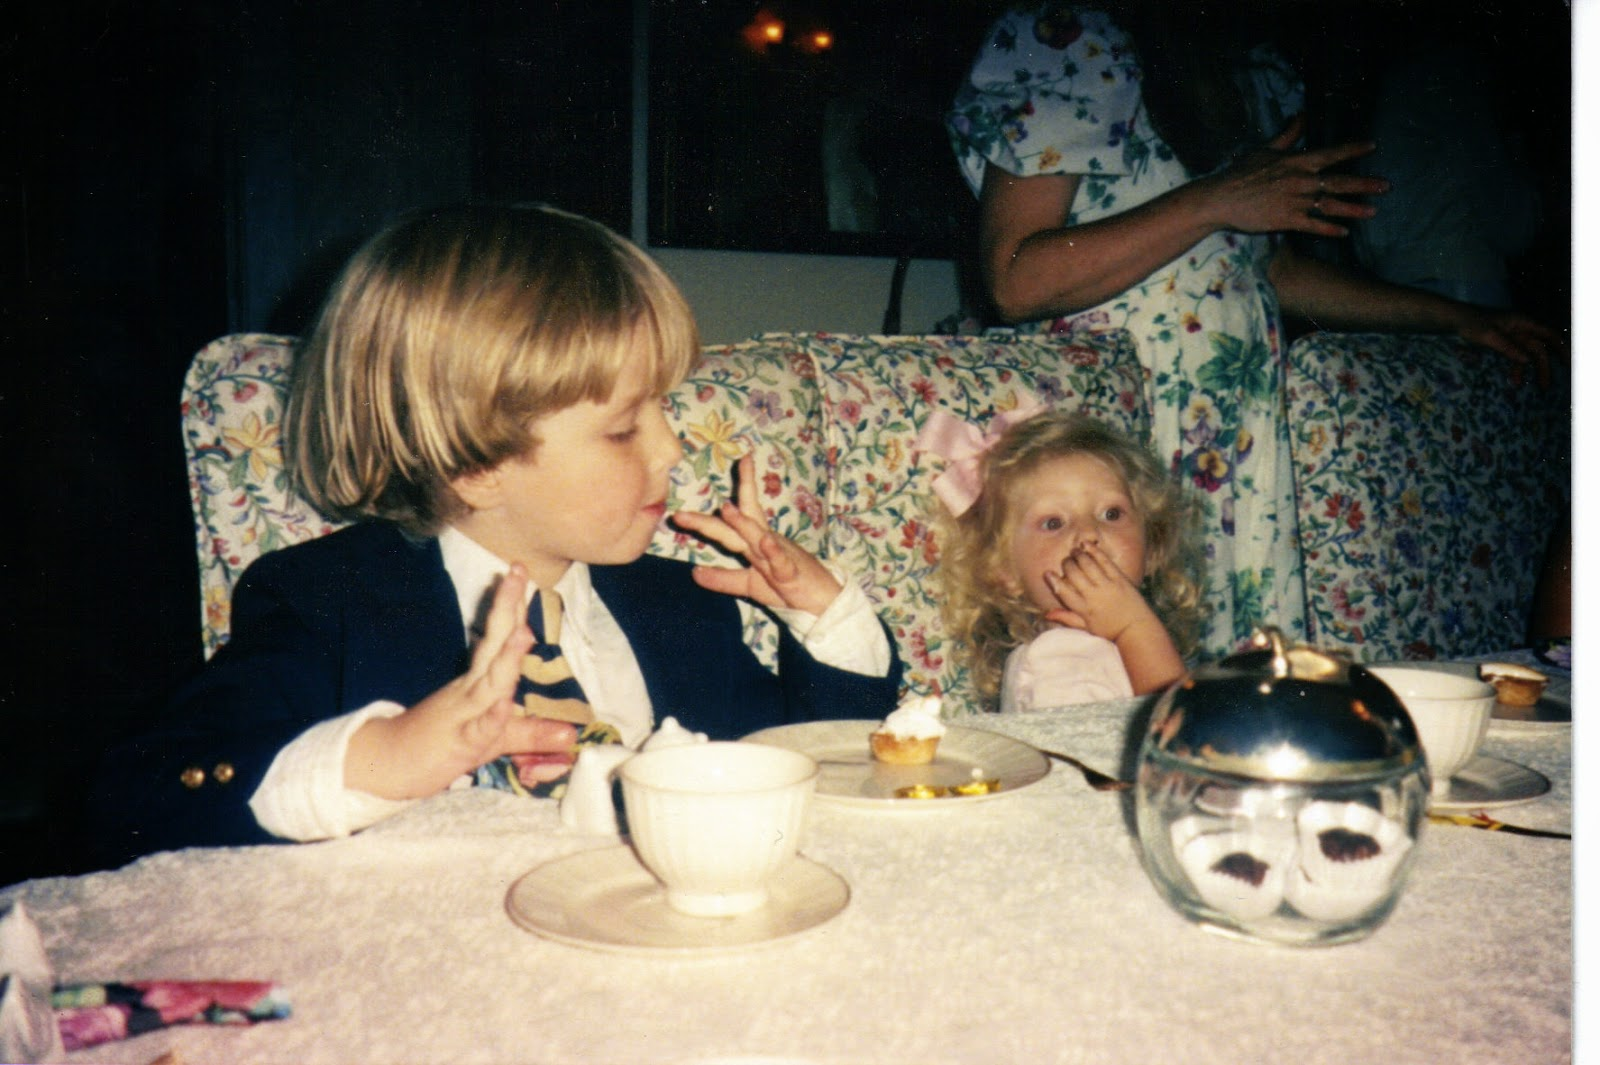 shiloh+and+nona+manners+party+1996ish.jpg